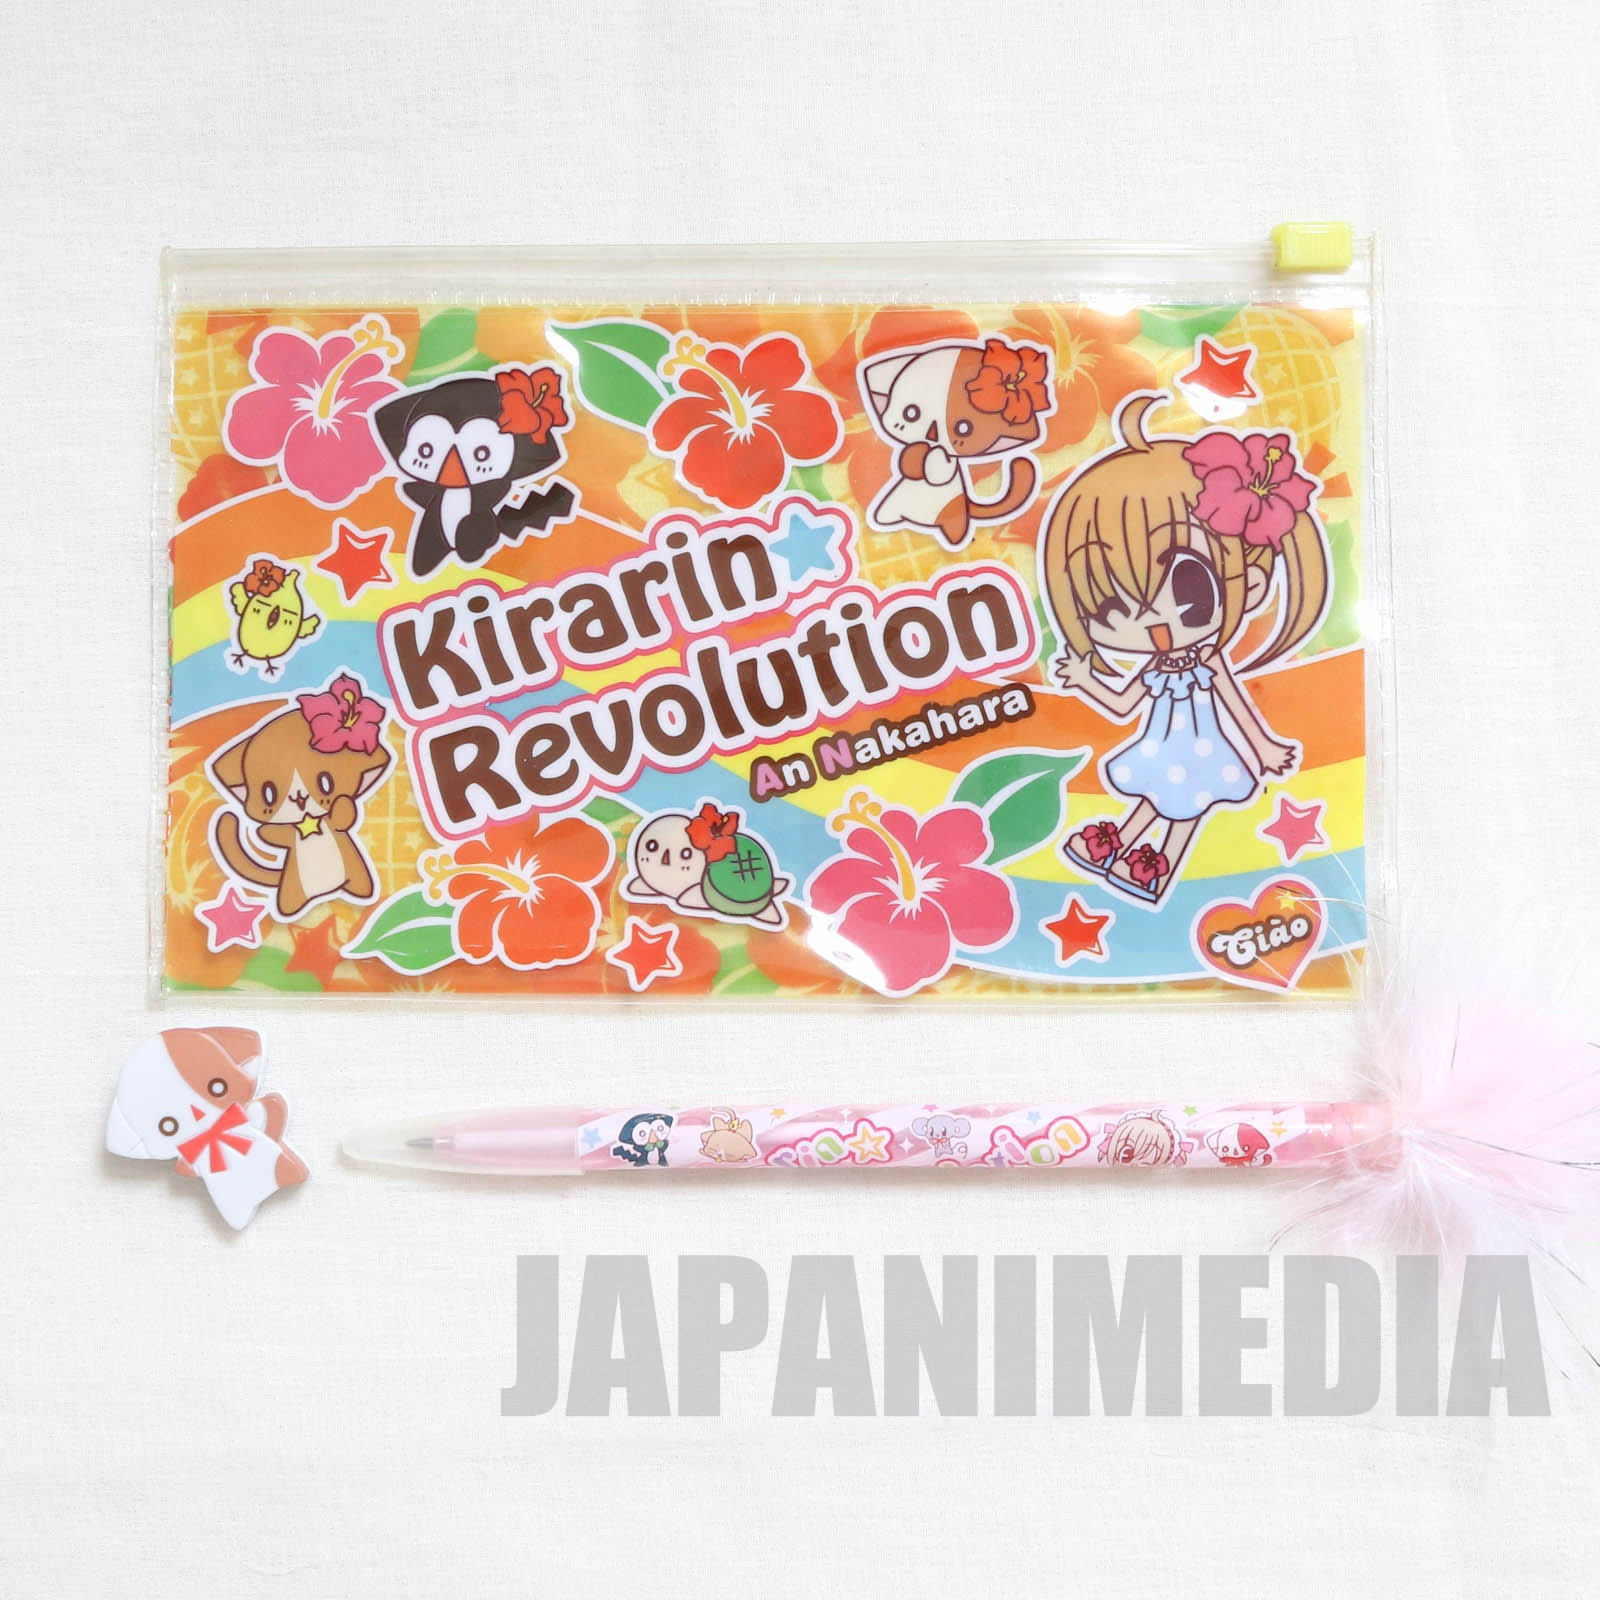 Kirarin Revolution Nylon Case & Point Pen & Na-san Clip JAPAN MANGA